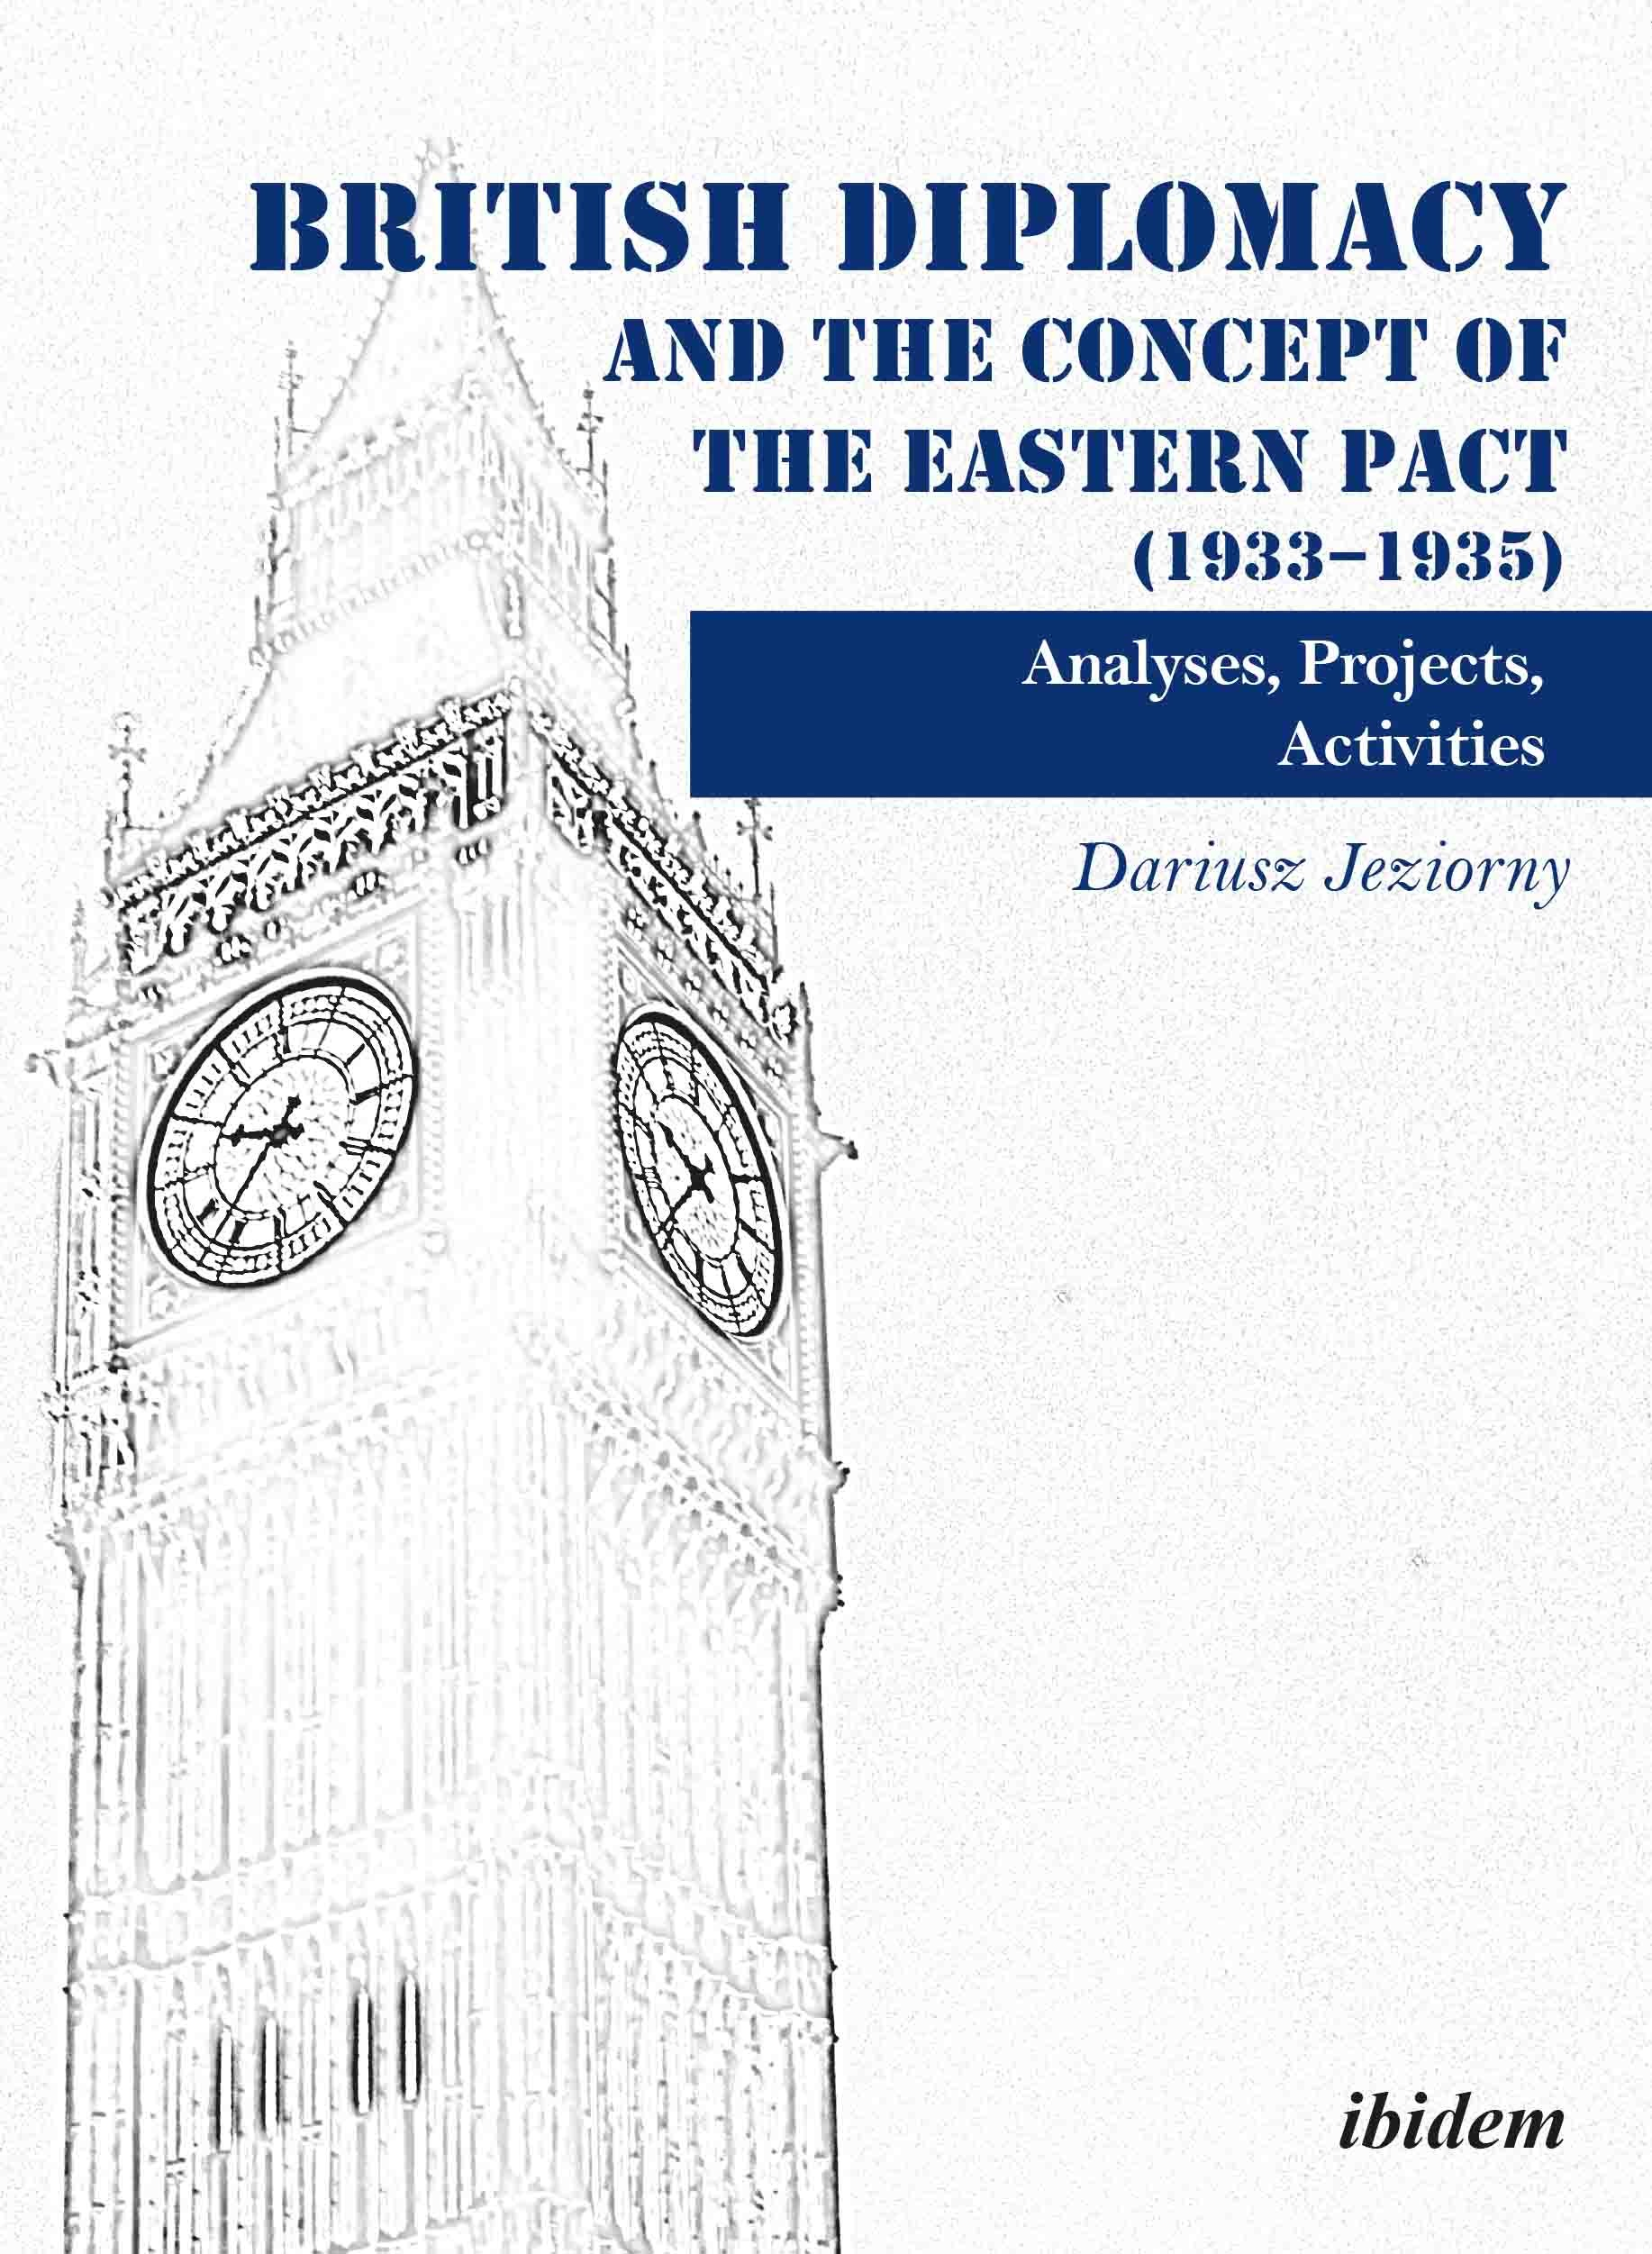 British Diplomacy and the Concept of the Eastern Pact (1933-1935)